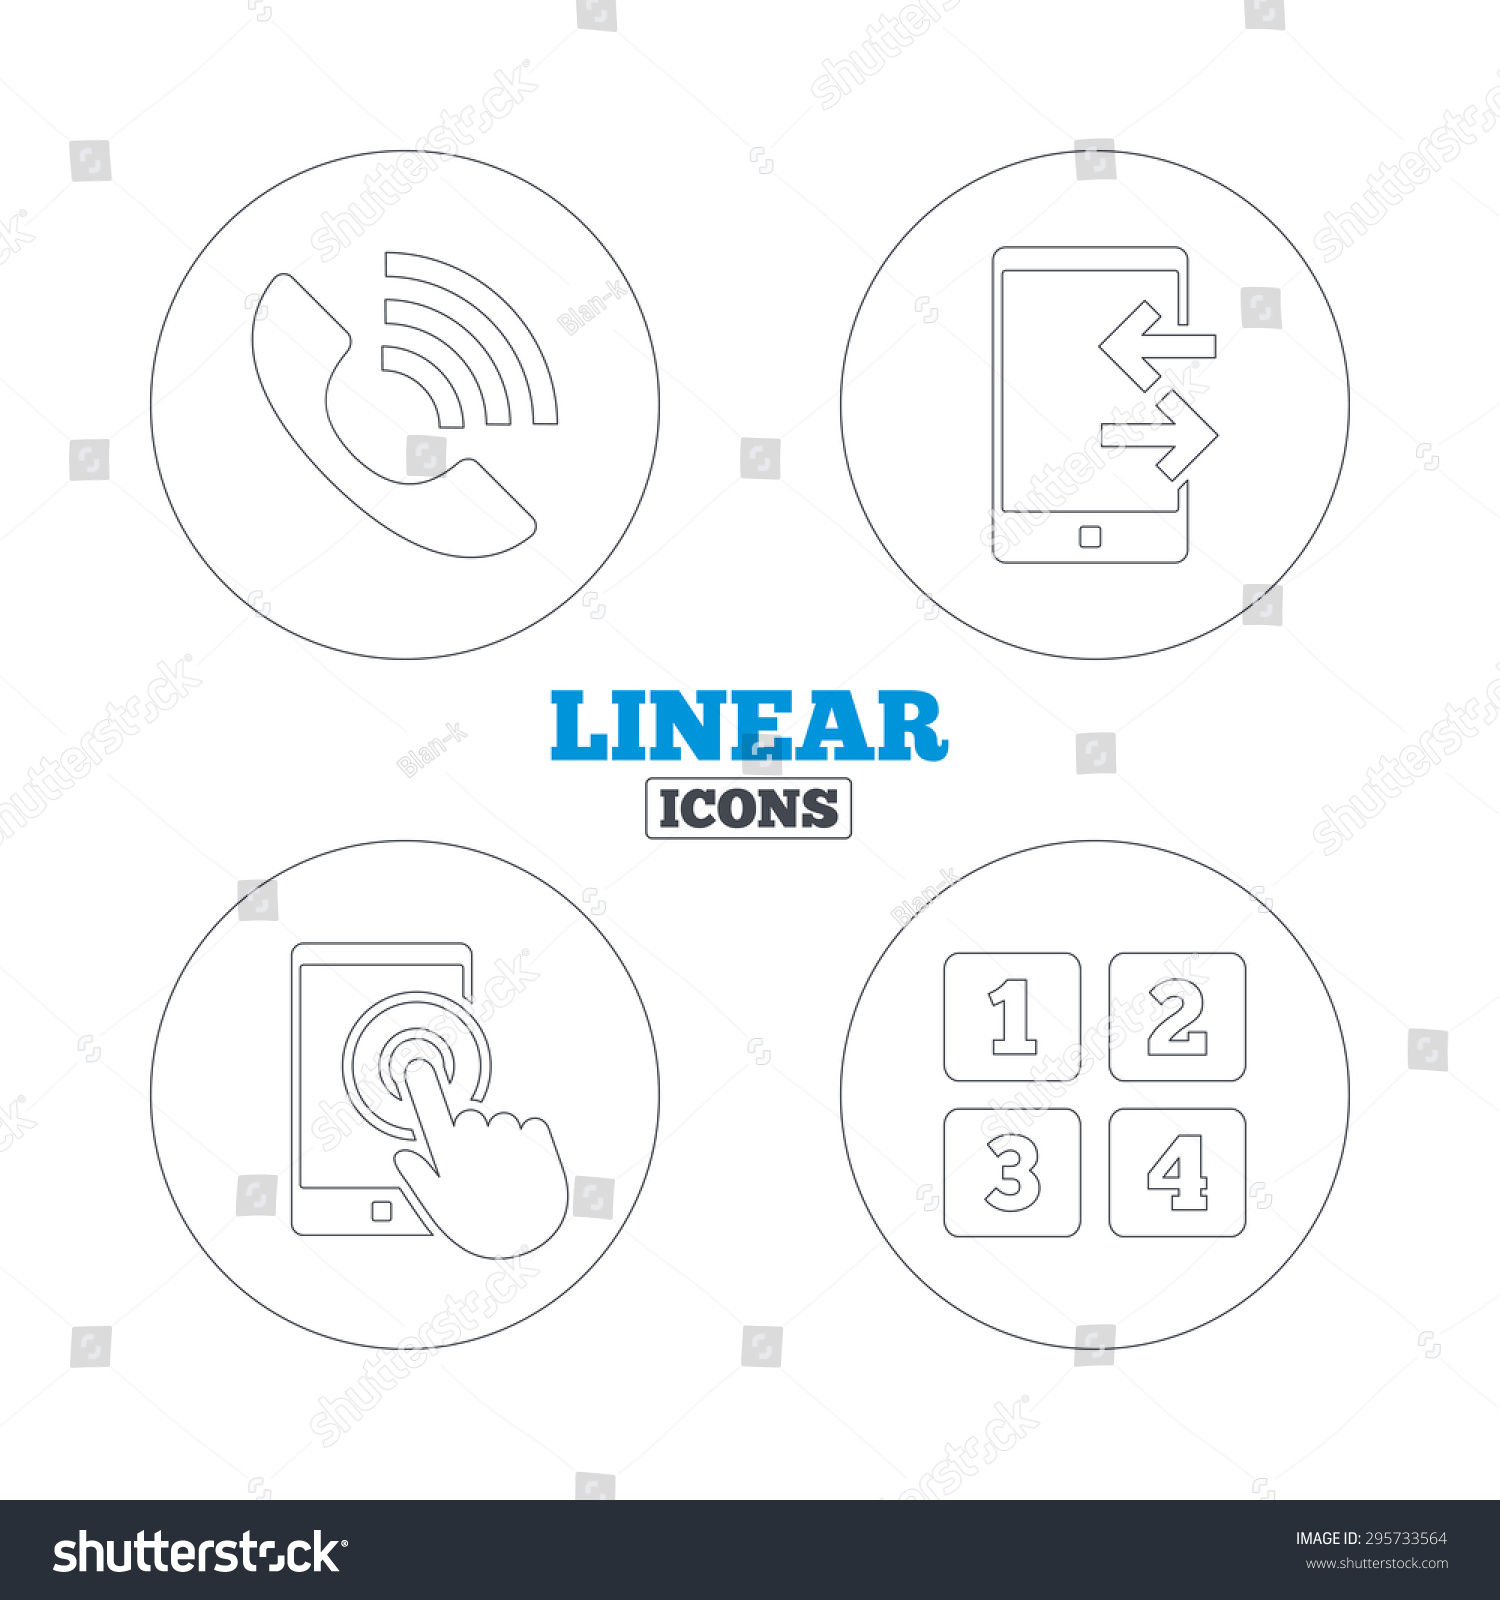 Phone icons touch screen smartphone sign stock vector 295733564 phone icons touch screen smartphone sign call center support symbol cellphone keyboard symbol biocorpaavc Gallery